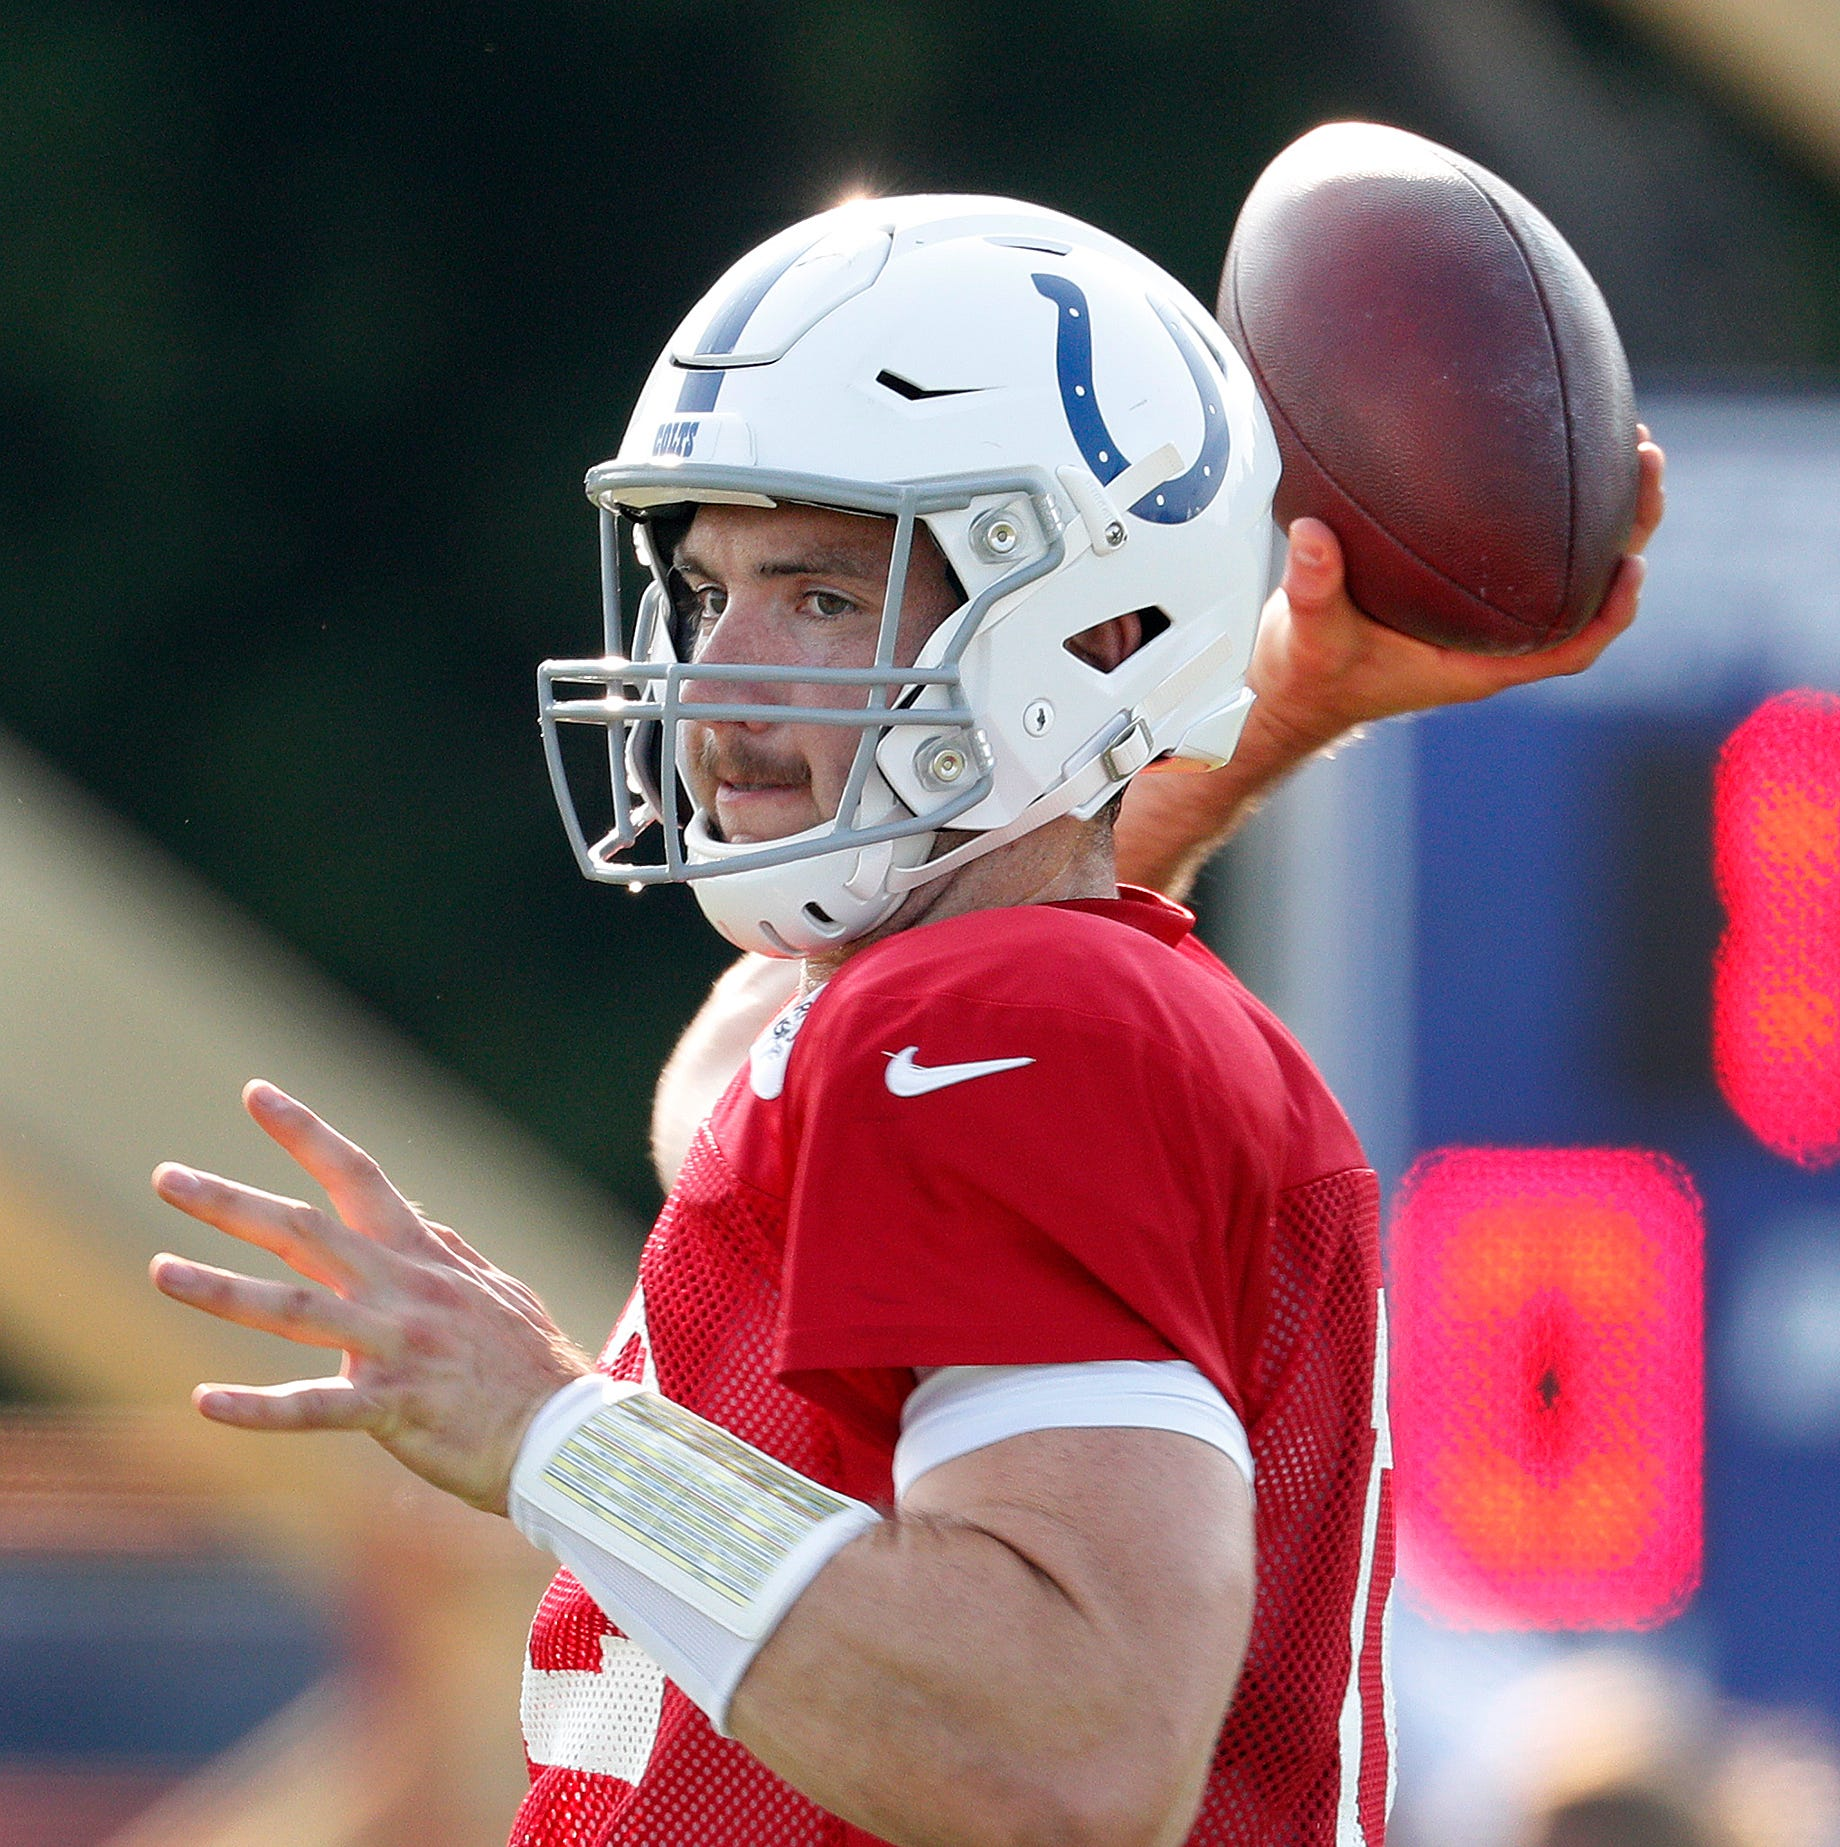 Andrew Luck was 'exhausted' after Colts game, but 'had fun.' And, about that mustache.